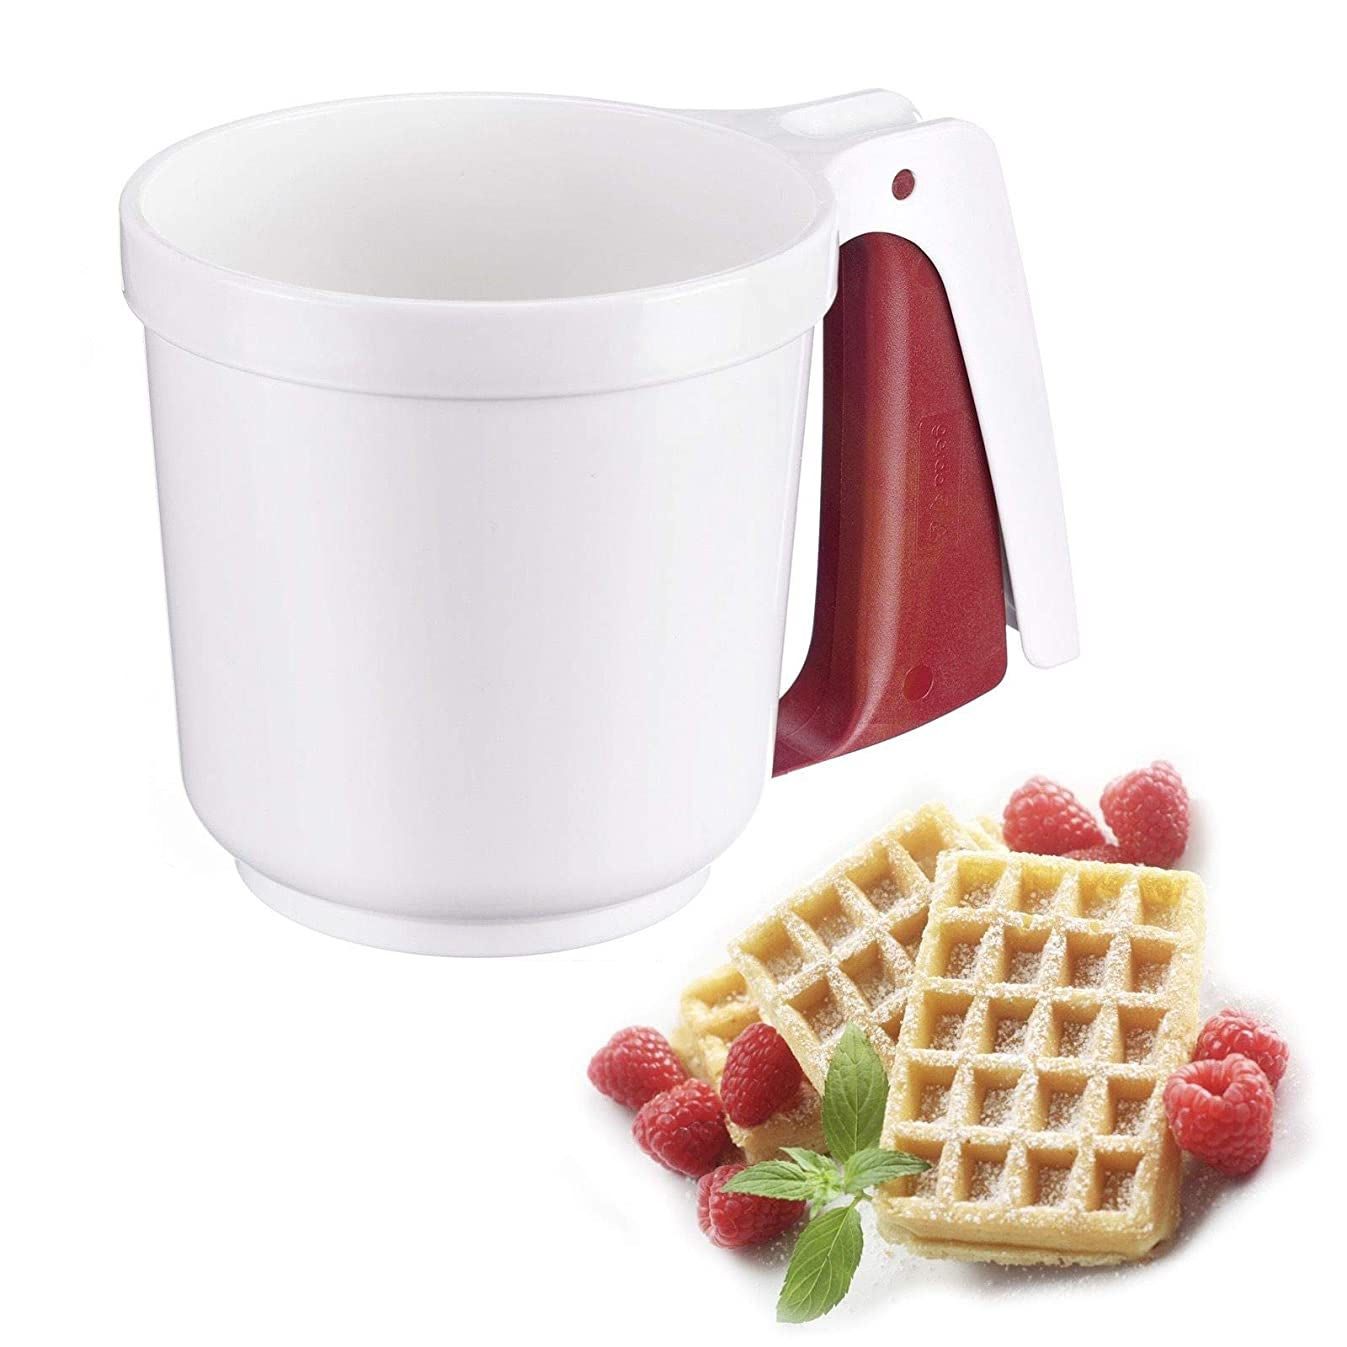 Westmark 32142270 Flour- And Icing Sifter, 6